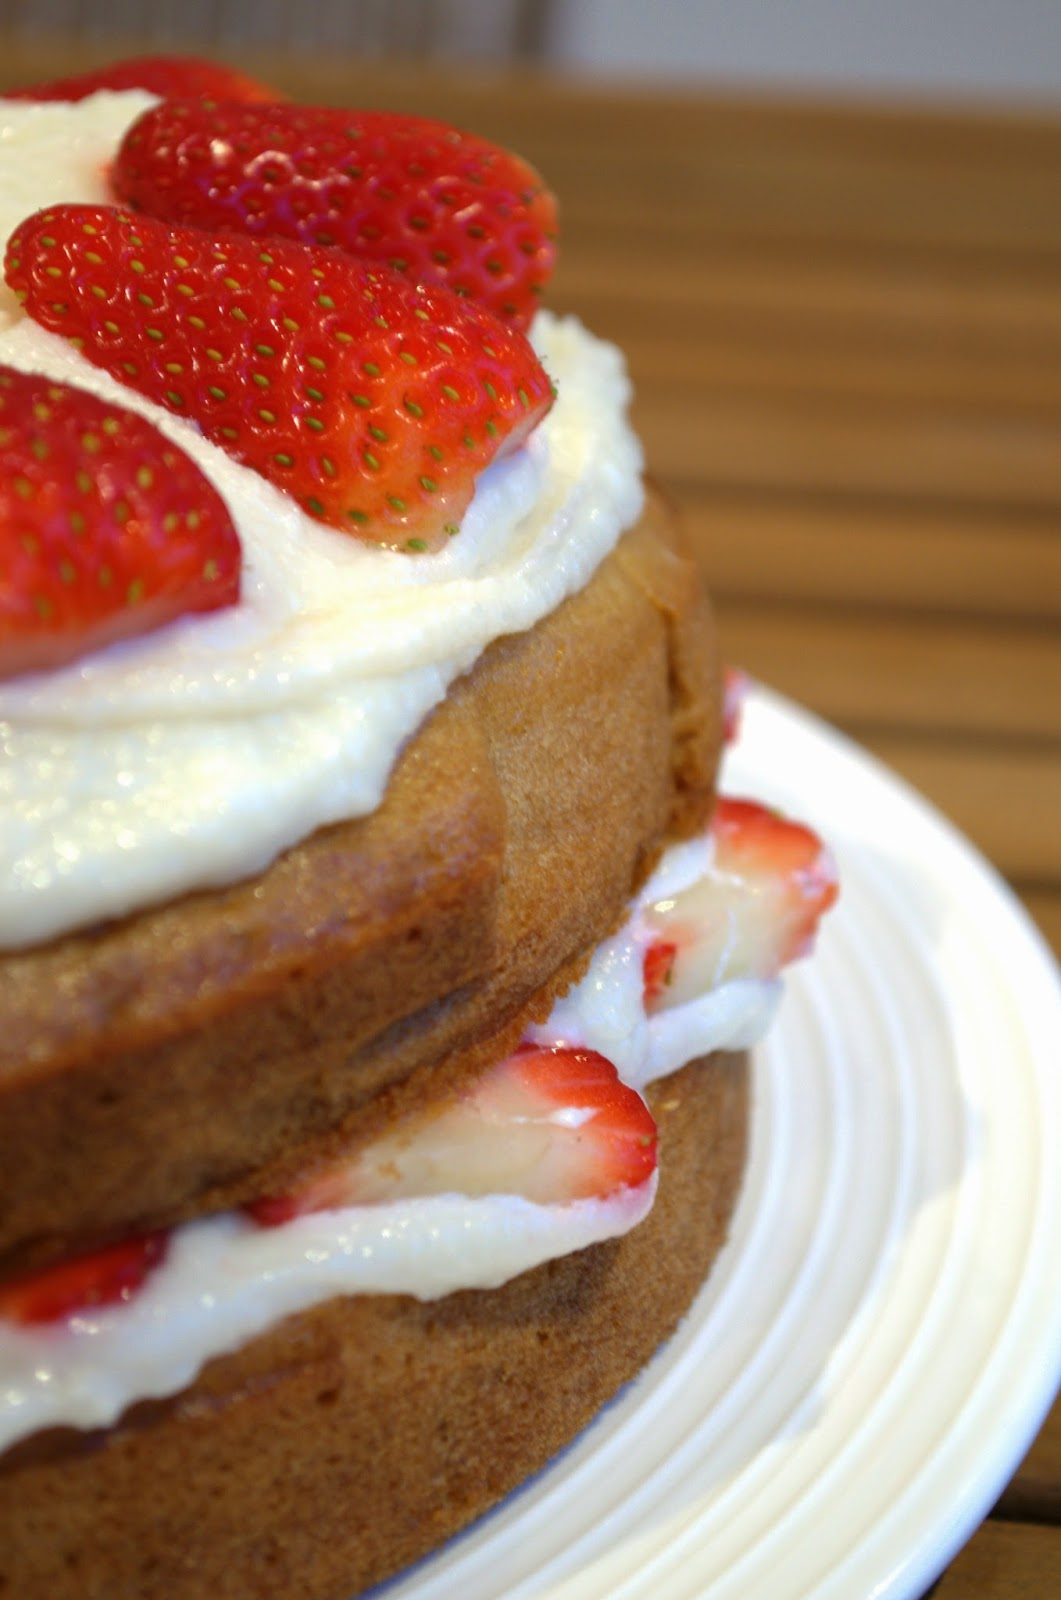 Vegan sponge cake with buttercream frosting and strawberries